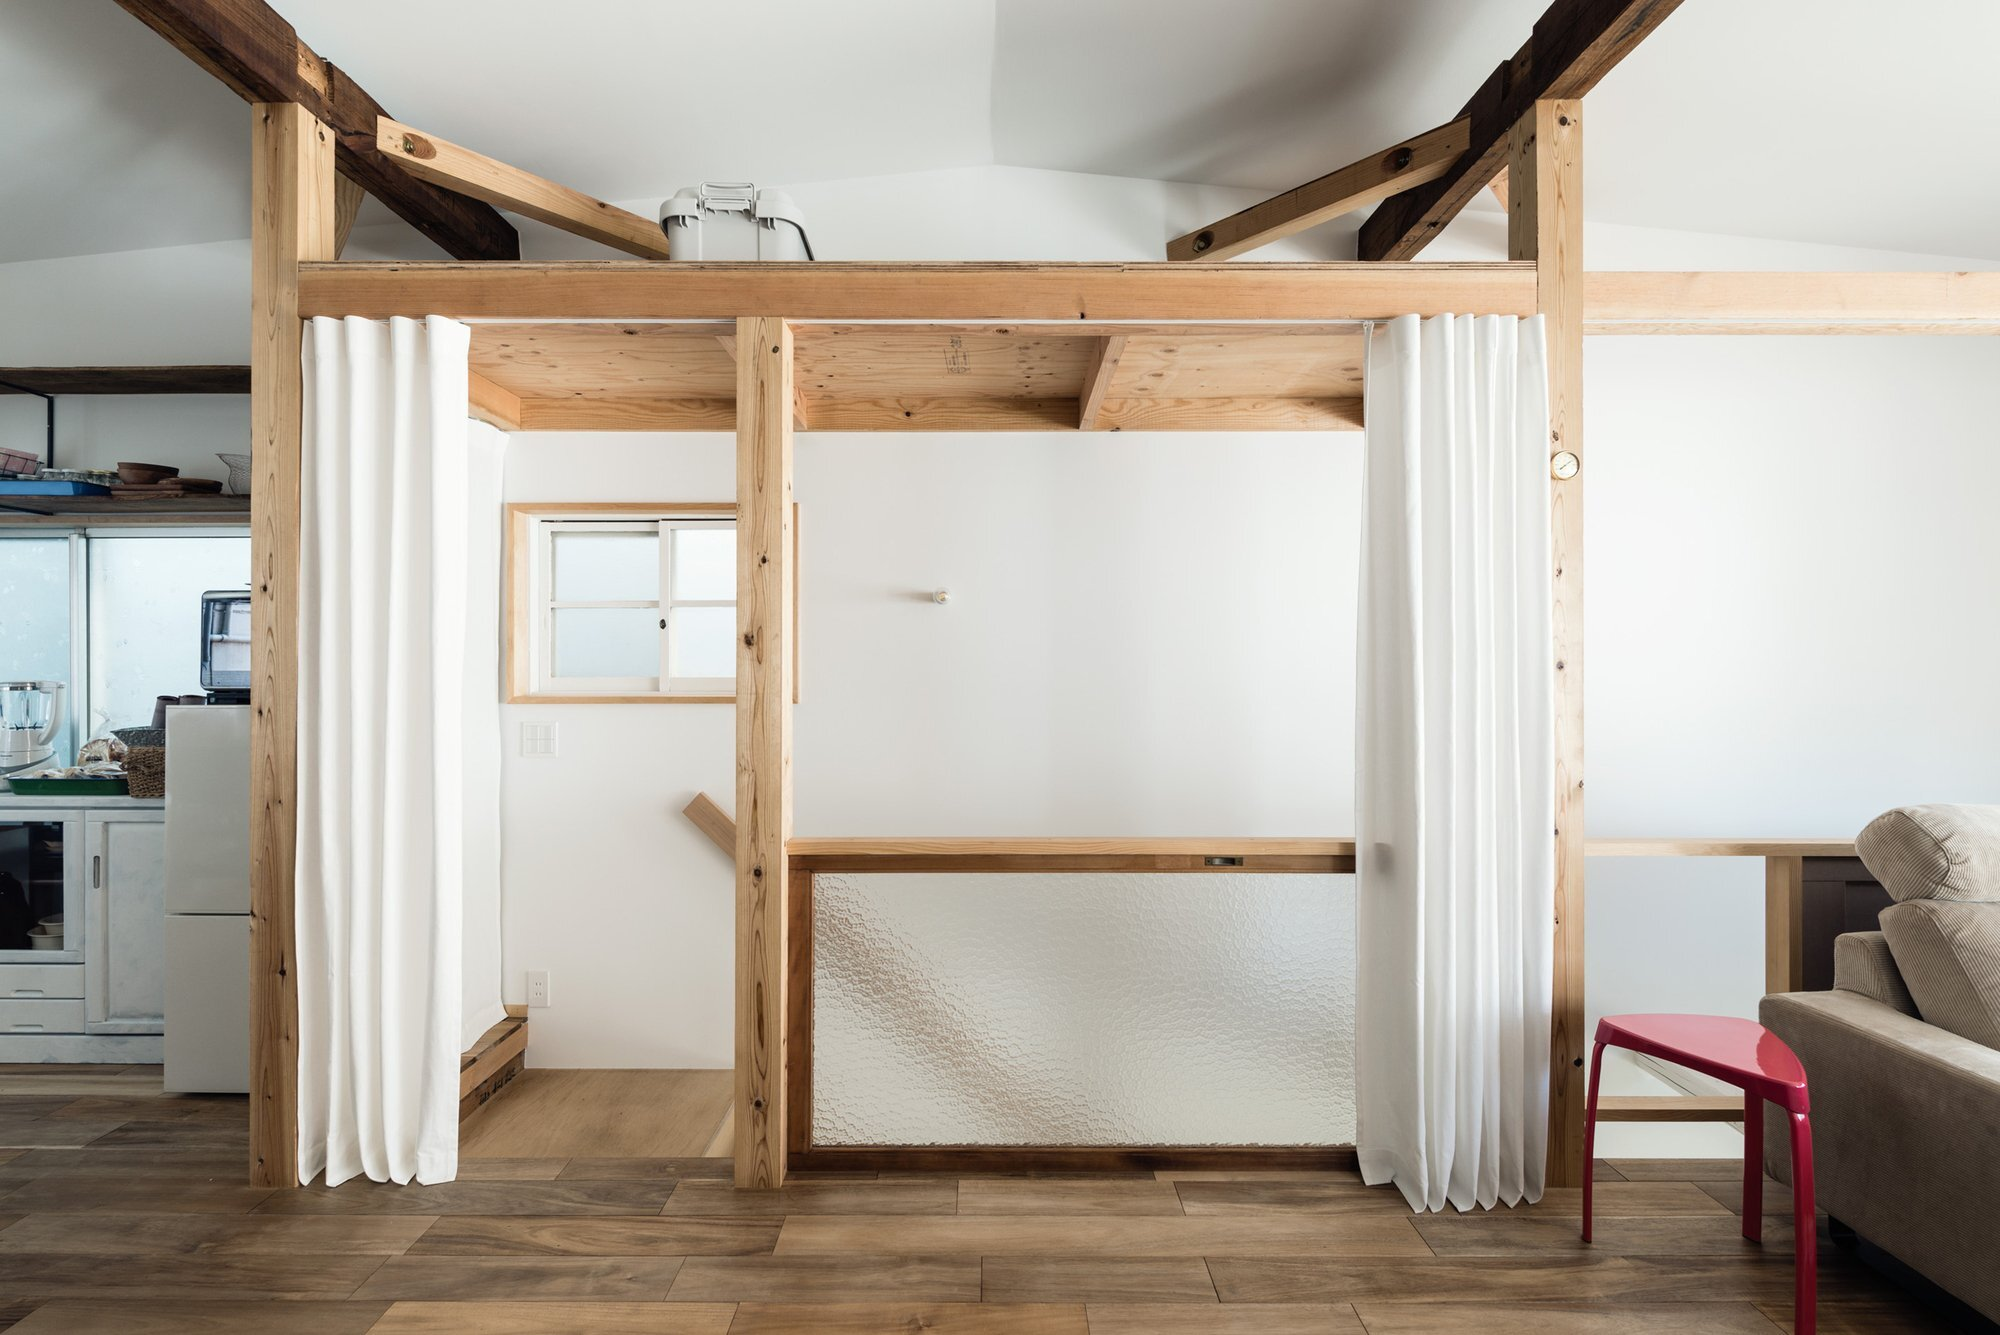 Re-Toyosaki - A Small Japanese Town House Revamp in Osaka